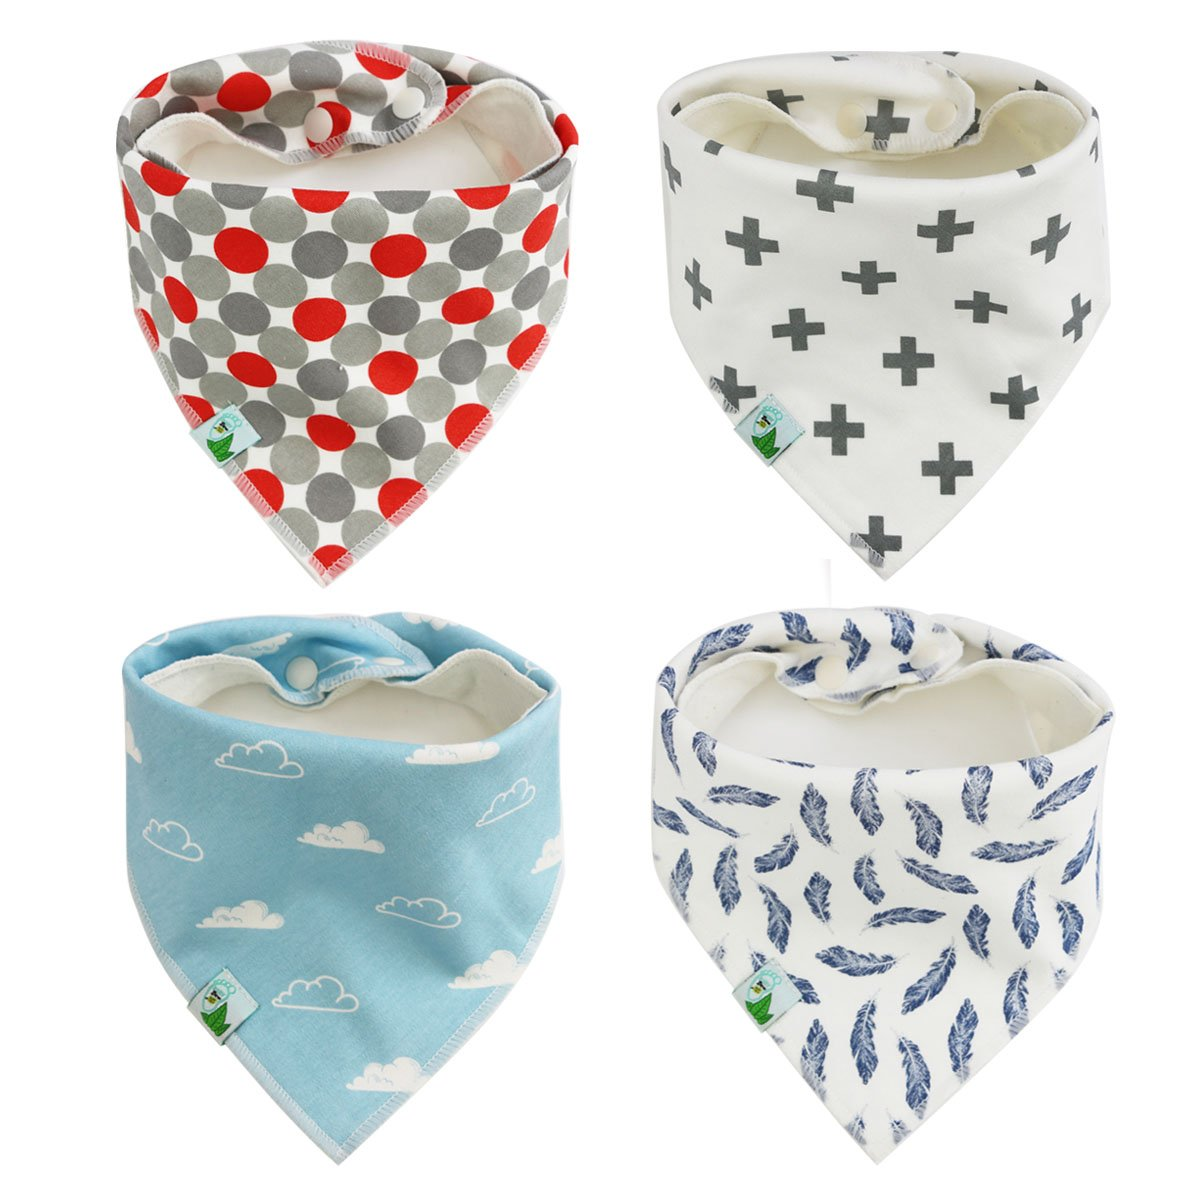 Baby Bandana Bibs, Cute Unisex 4 Pack Bib with Snaps - Best for Babies Drooling, Teething and Feeding - 100% Soft Cotton & Waterproof Fleece Backing. Perfect Baby Shower Gift Set for Boys & Girls